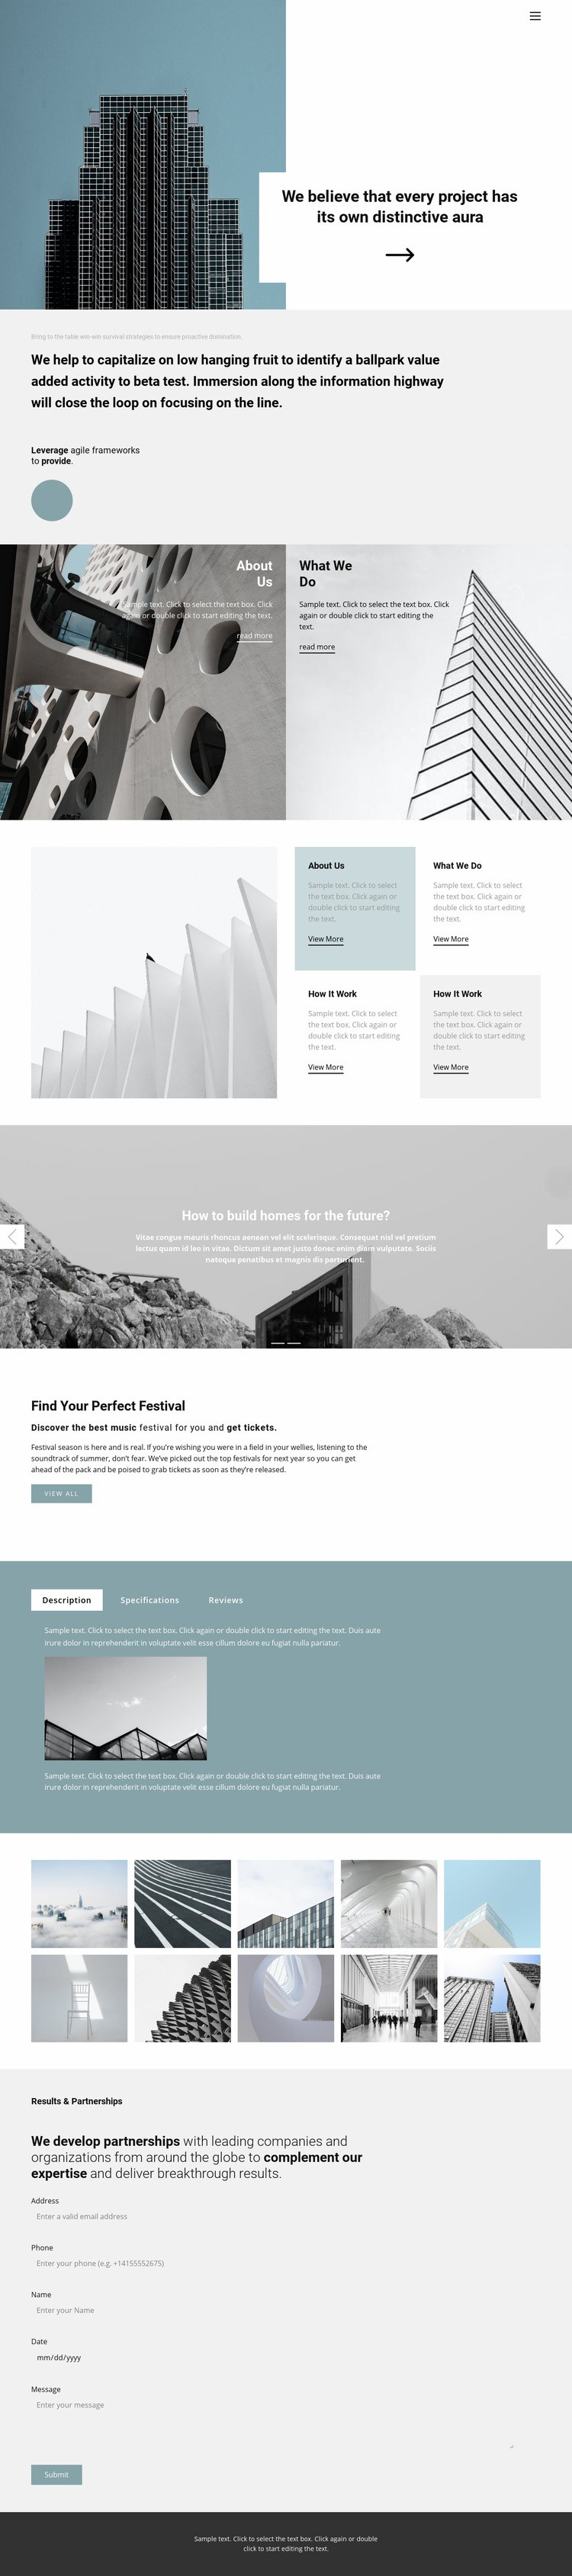 Choose an office for yourself Web Page Design